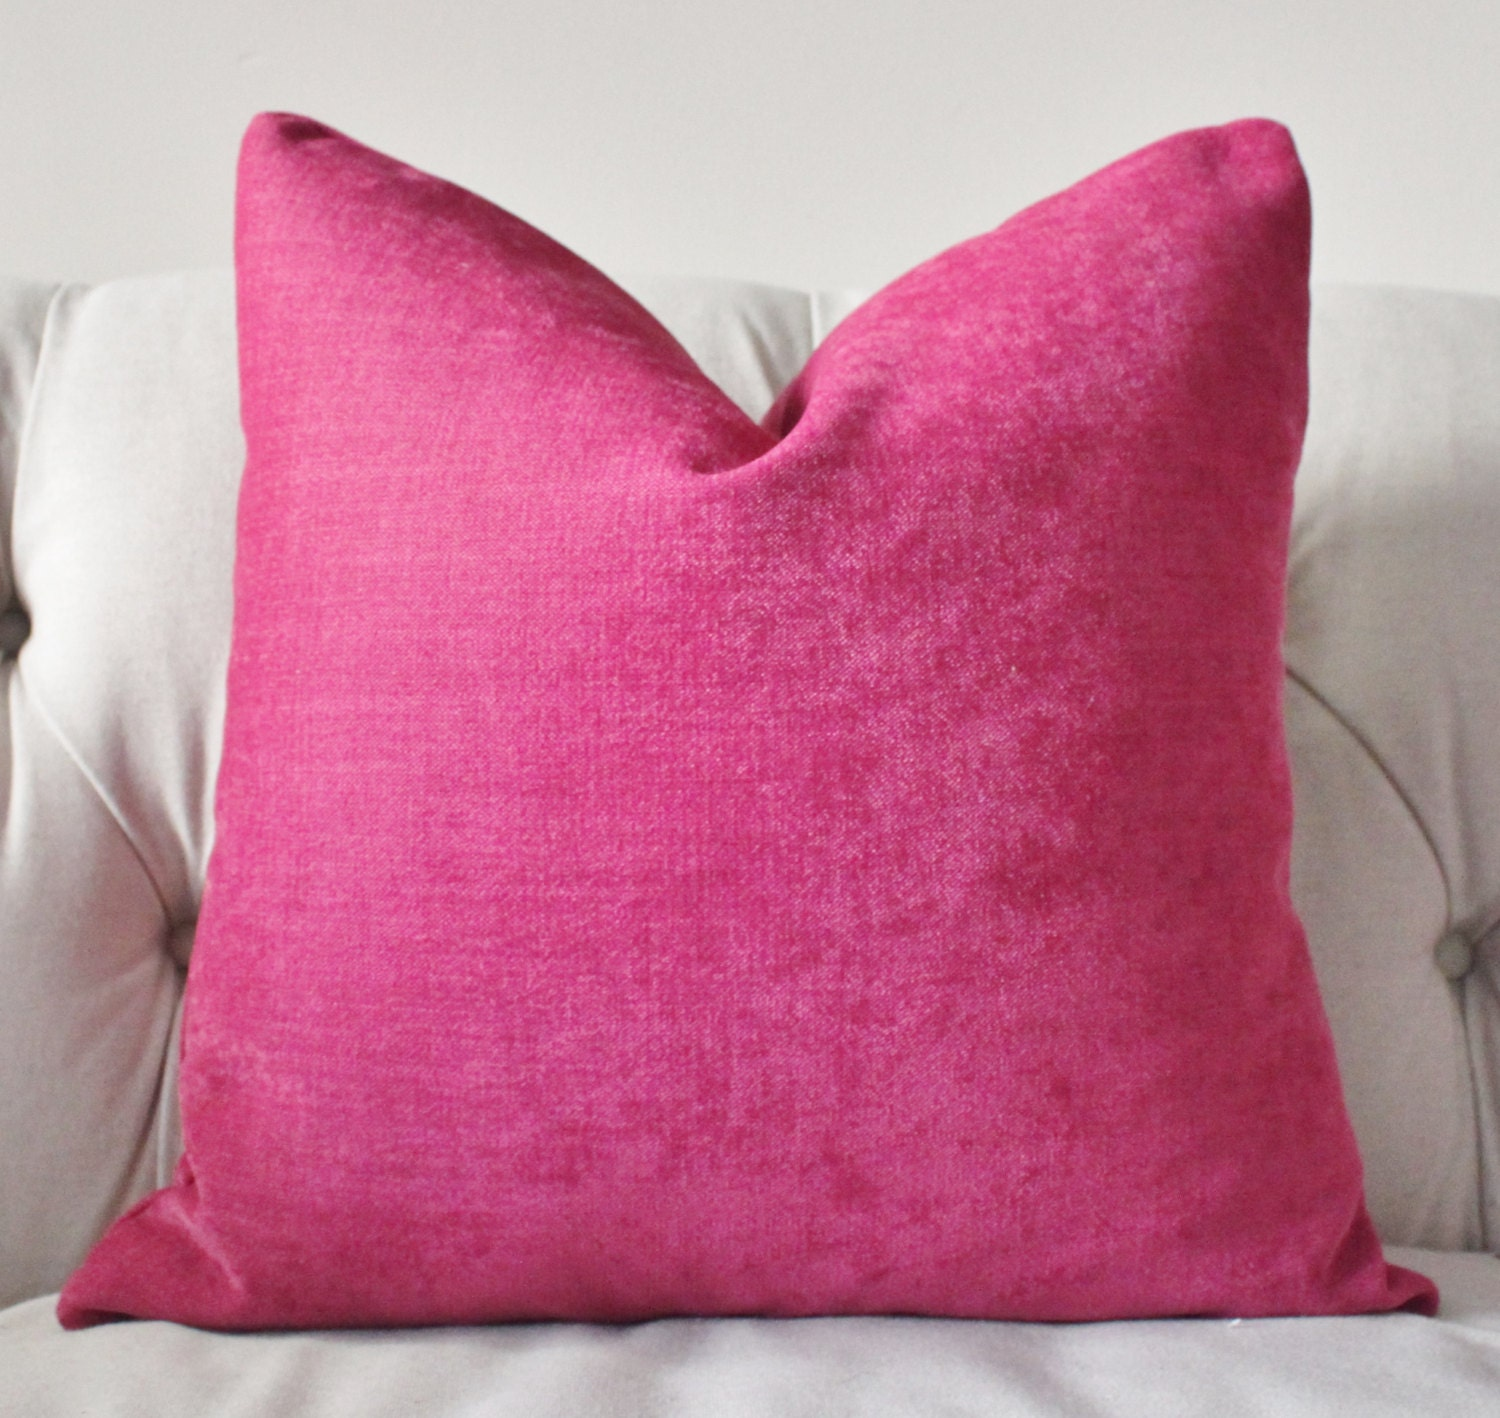 wool throw pillow shop woven product keaton pillows journey dear decorative